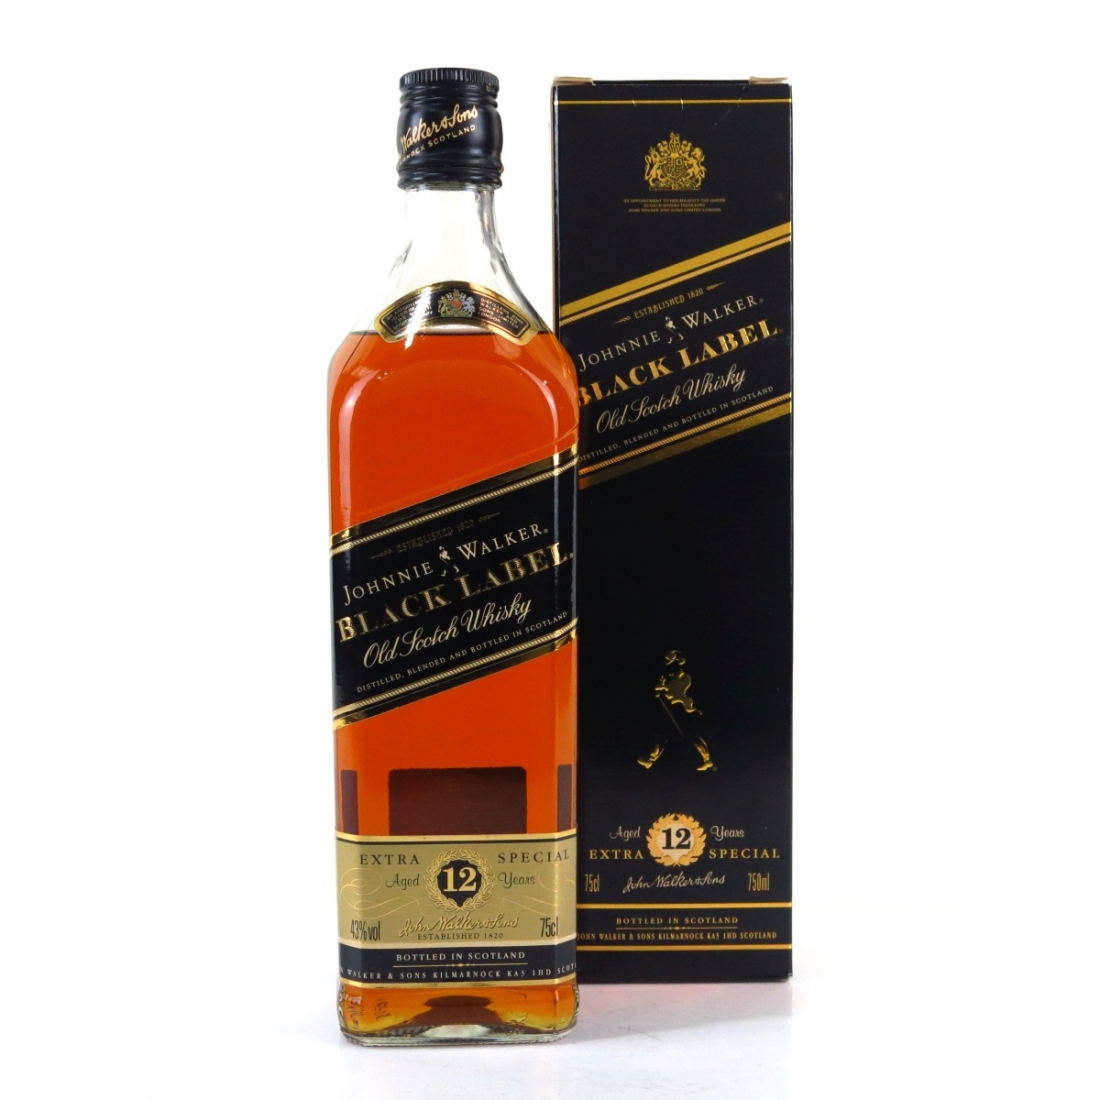 Johnnie Walker Black Label 12 Year Old 1980s